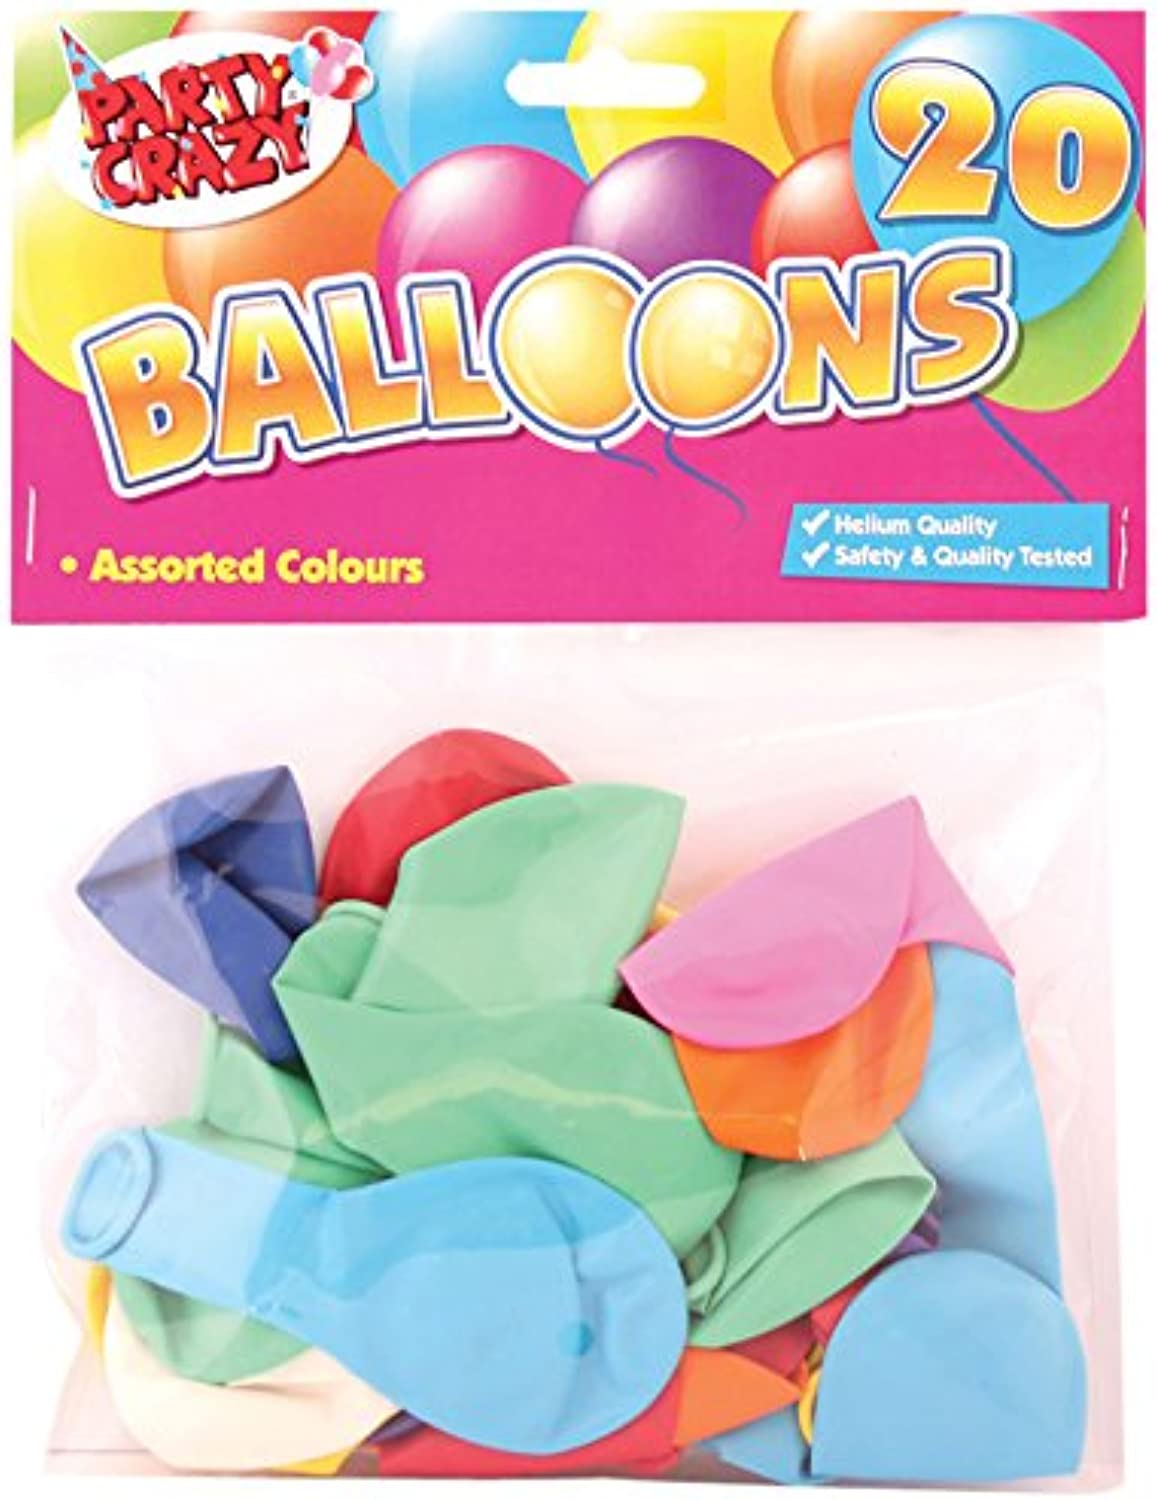 Tallon Party Crazy Pack Of 20 Party Balloons Assorted Shapes & Colours